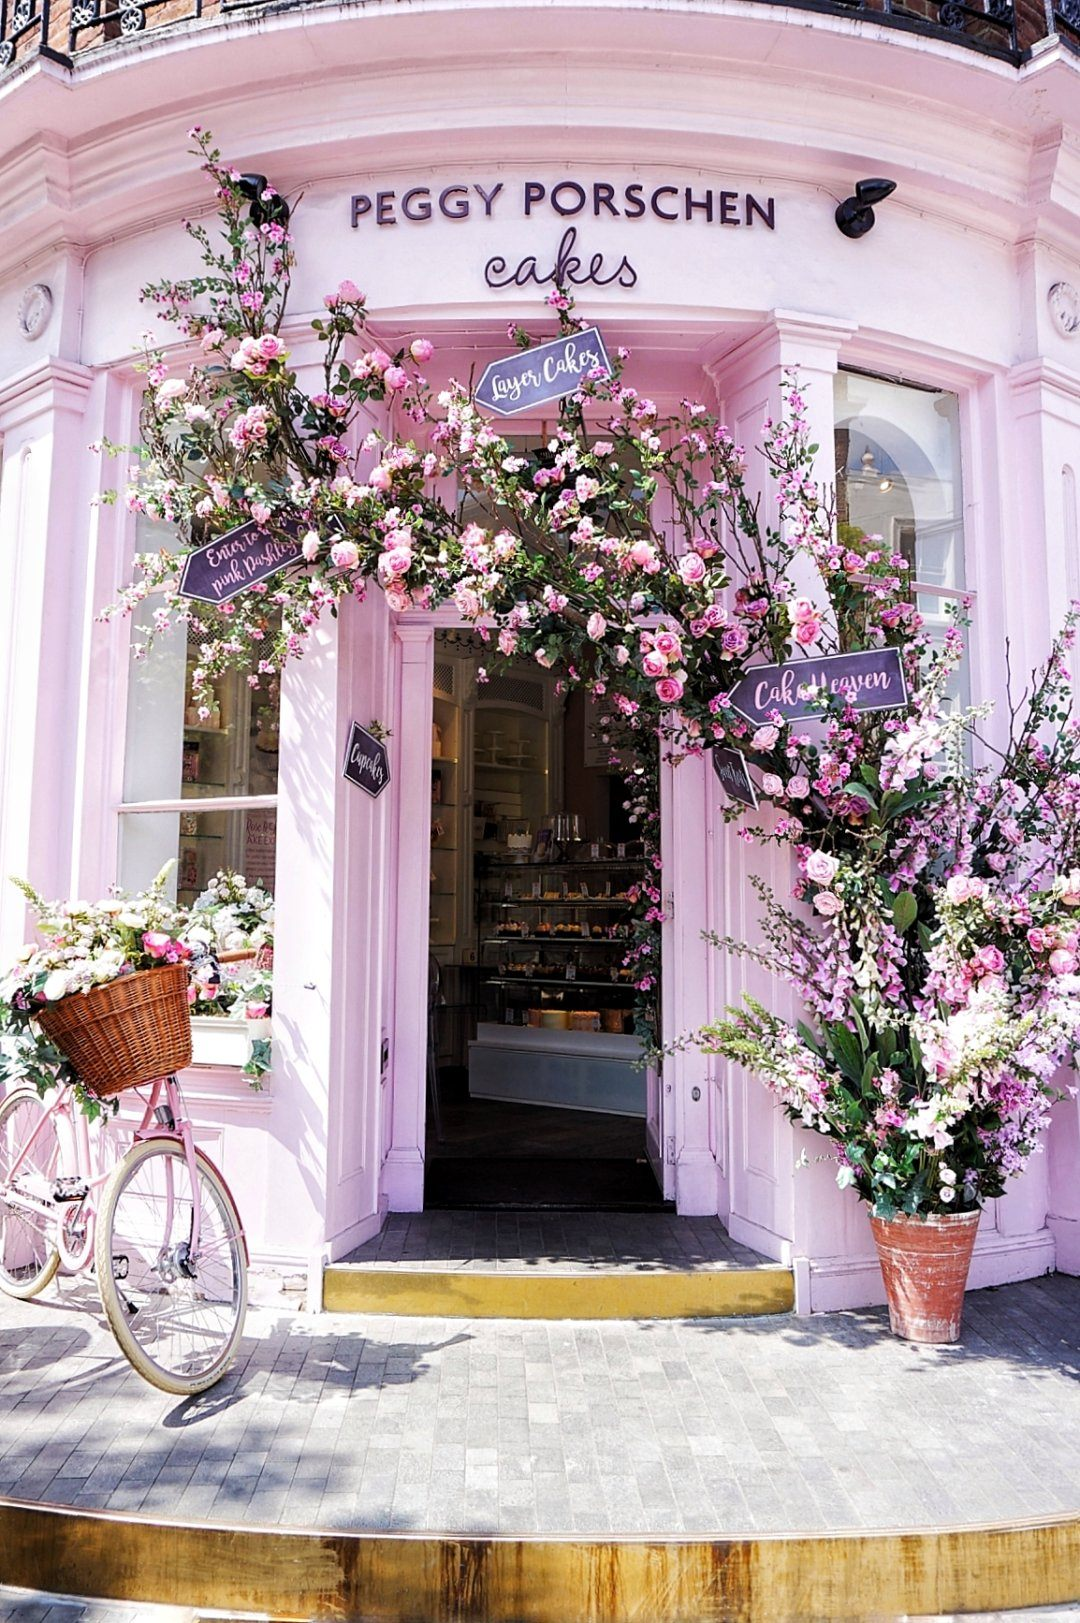 Peggy Porschen Cakes - 116 Ebury St, Belgravia w/ multiple locationsThe most photographed facade in London! Pop into one of Peggy's parlours for a sweet treat and snag a take-away box for later! Get there early to beat lines and escape into a dreamlike world of cakes and blossoms!